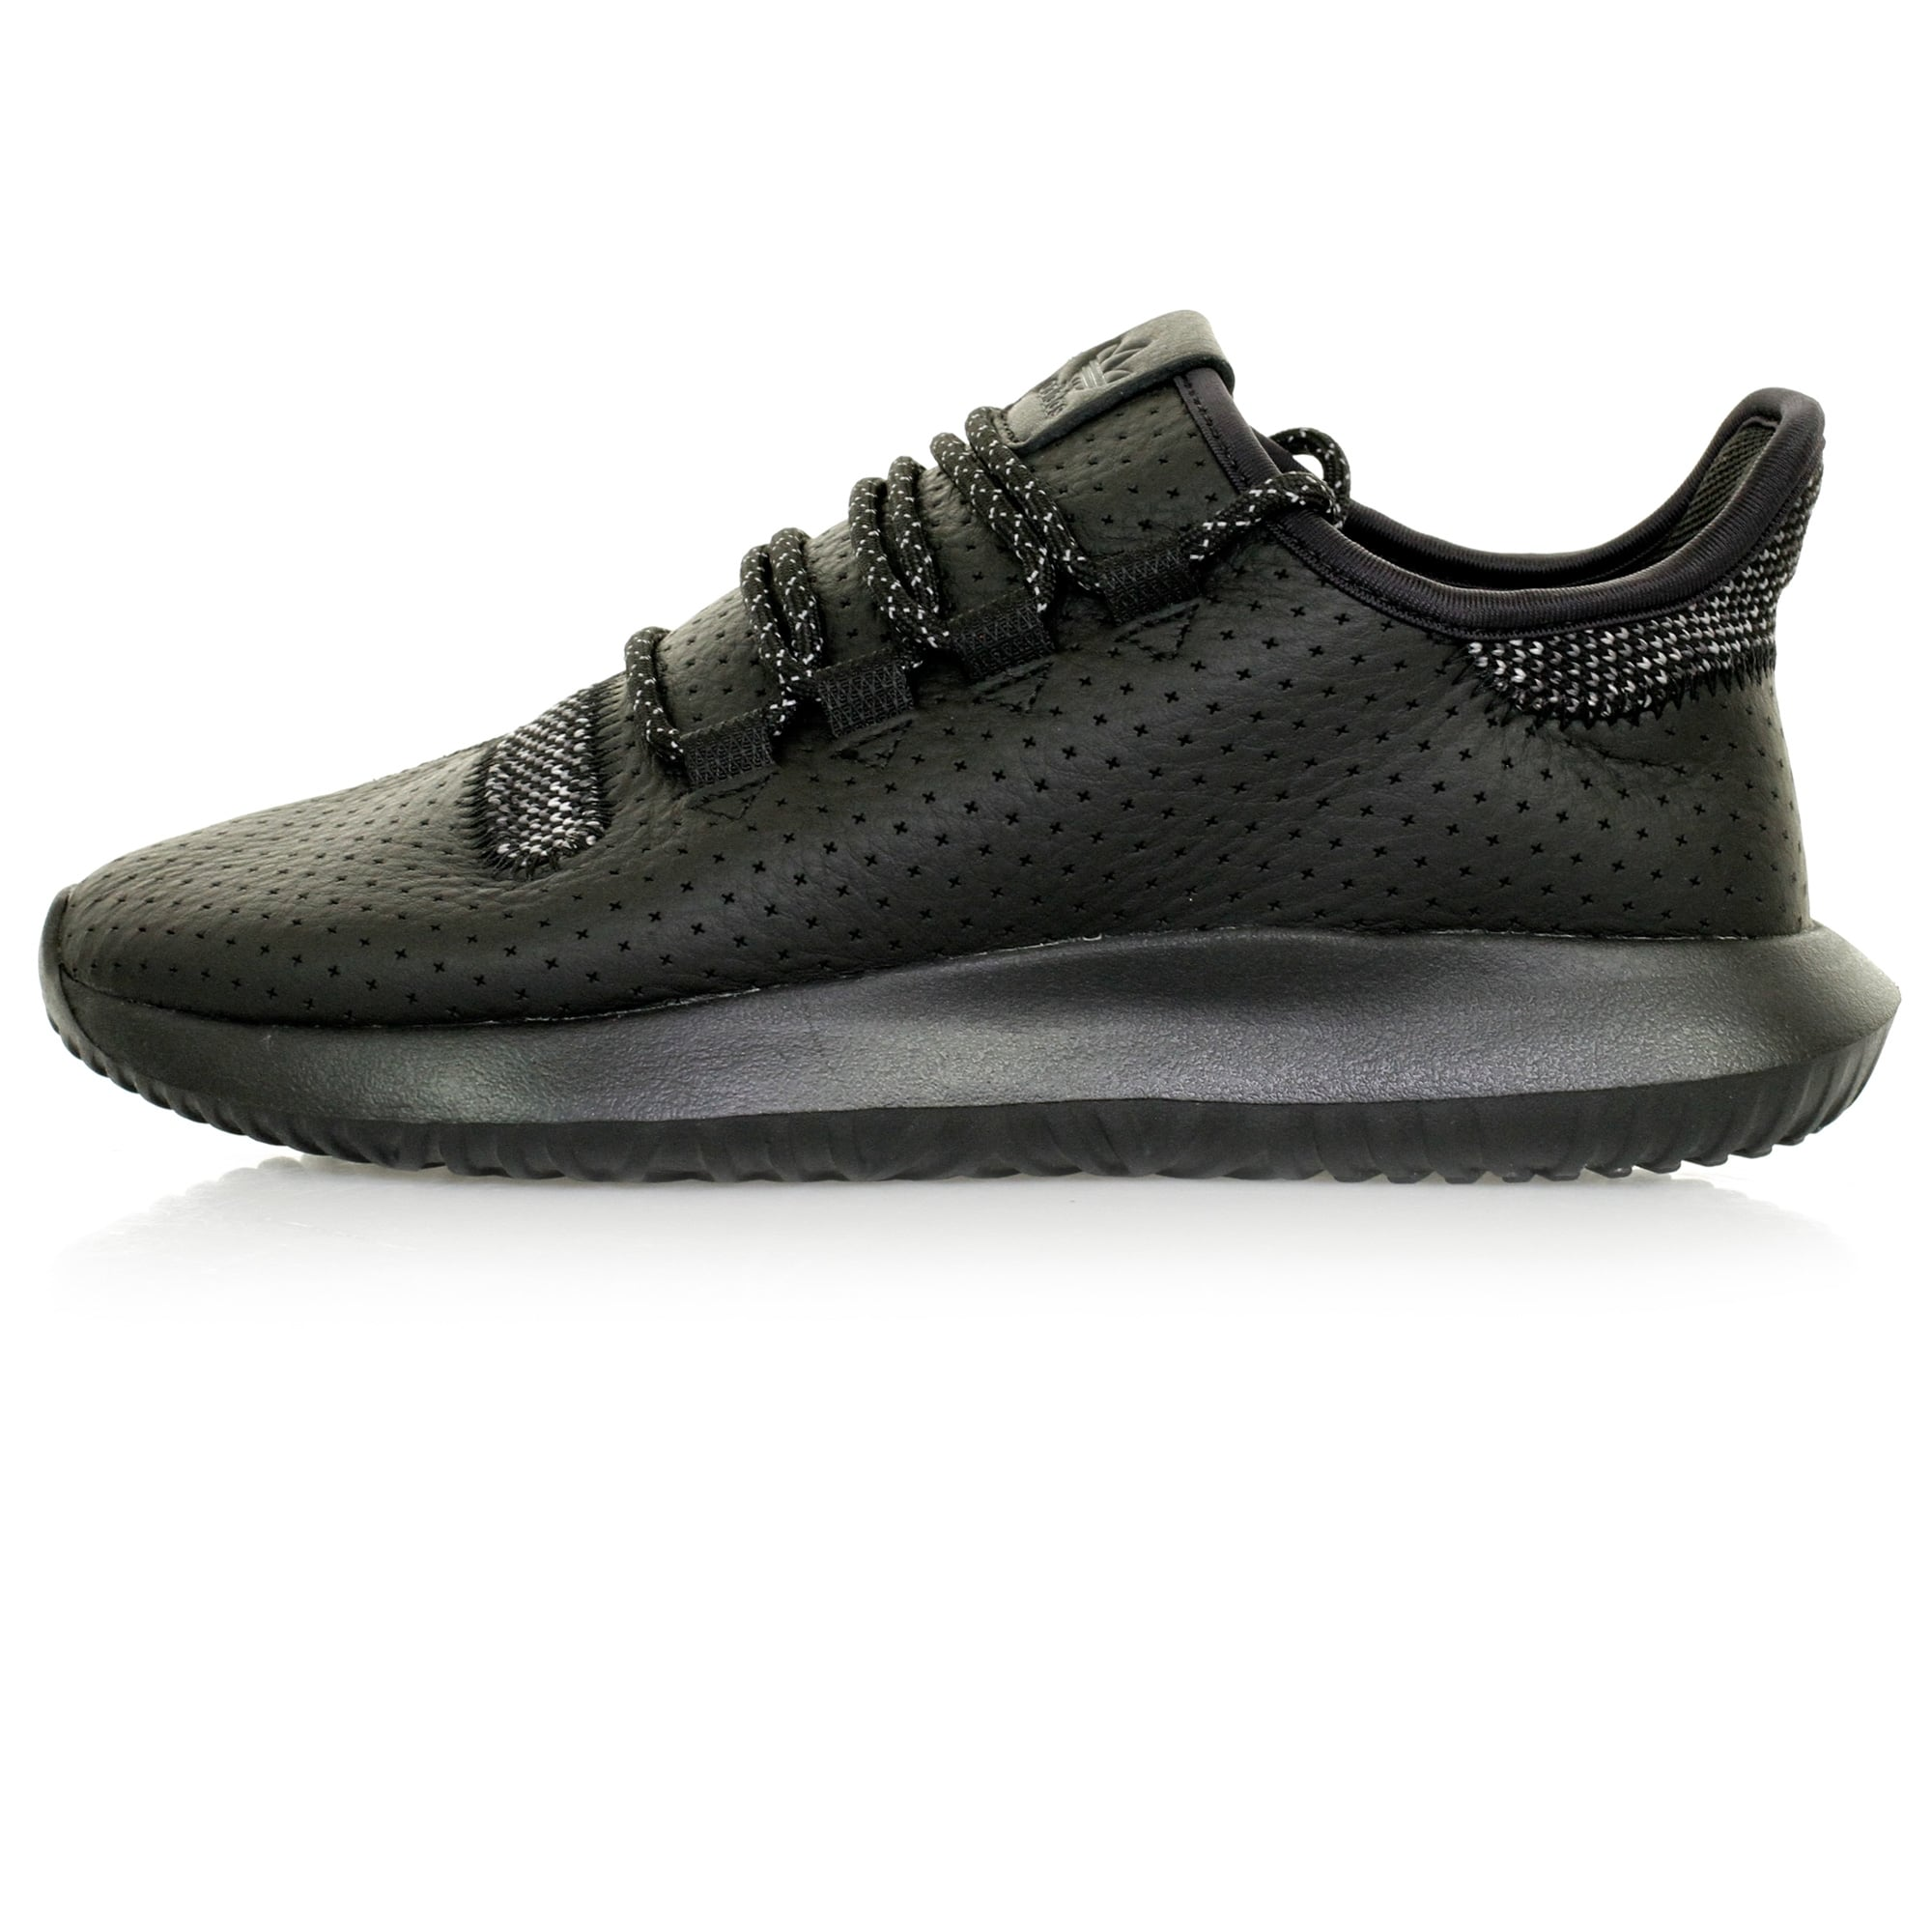 9a42f7bb015b0 Navy Adidas Yeezy Boost 350v2 Outlet Running Shoe Black